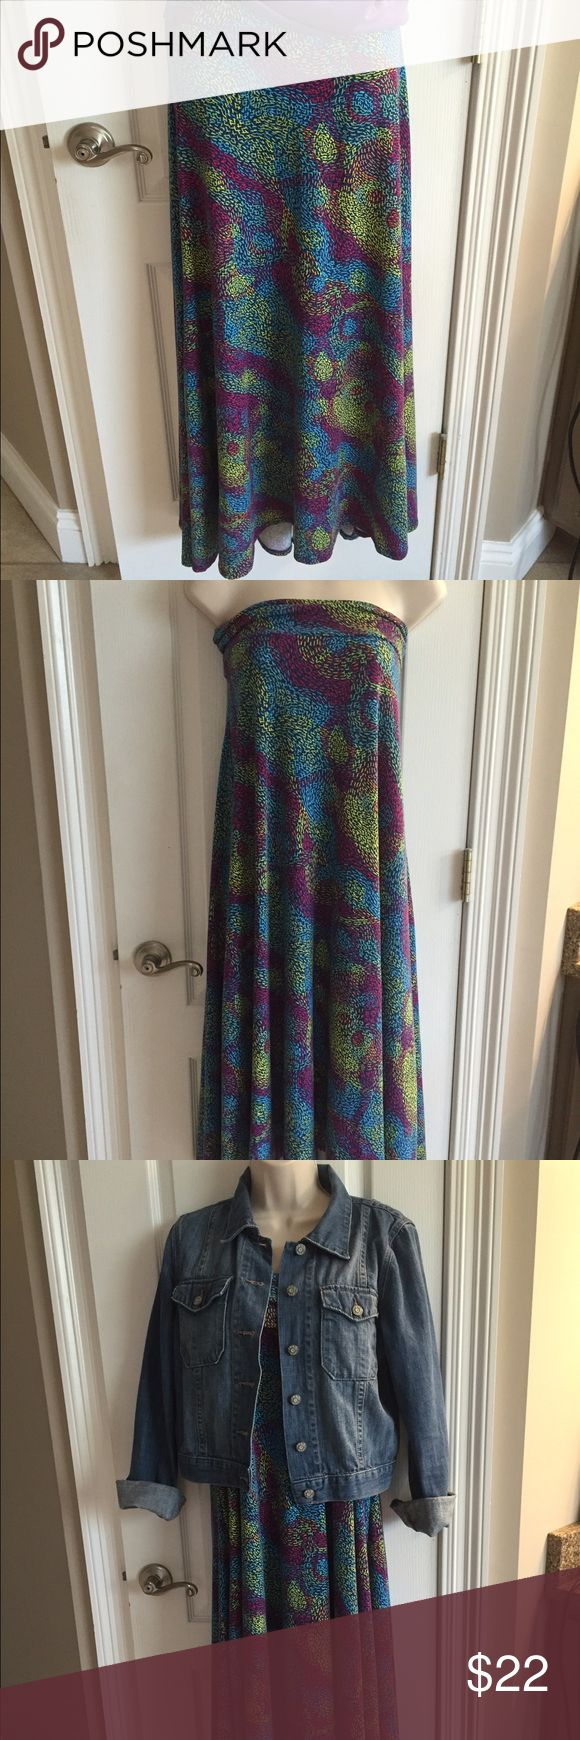 Lularoe Maxi Skirt Size M Beautiful colors of blue, purple & yellow. This Lularoe Maxi can be worn as a skirt or dress. New without tags. LuLaRoe Skirts Maxi